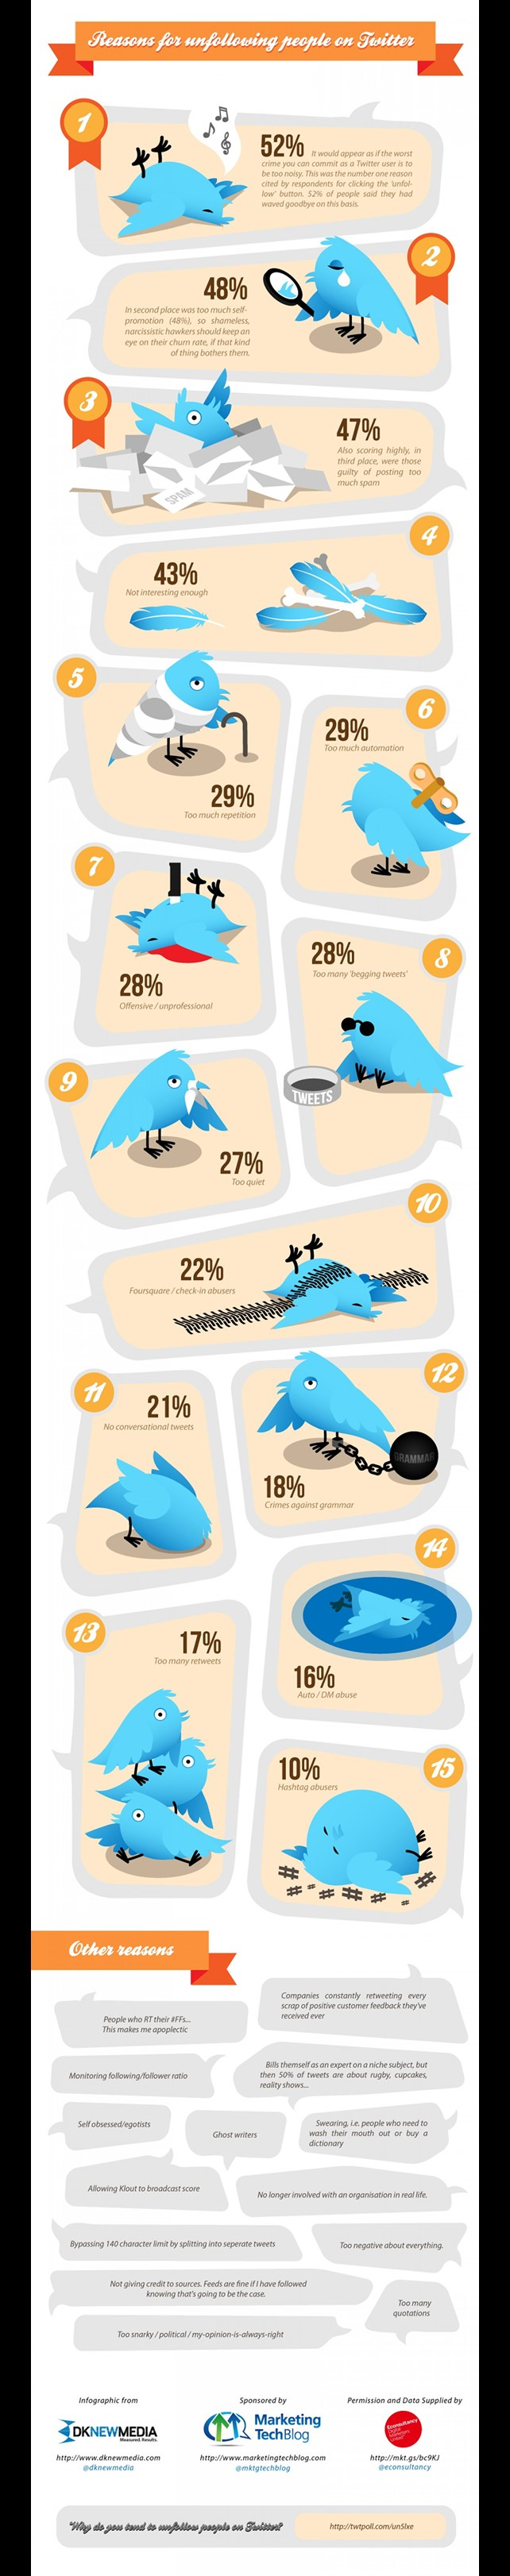 Infographic citing reasons why accounts are unfollowed on Twitter